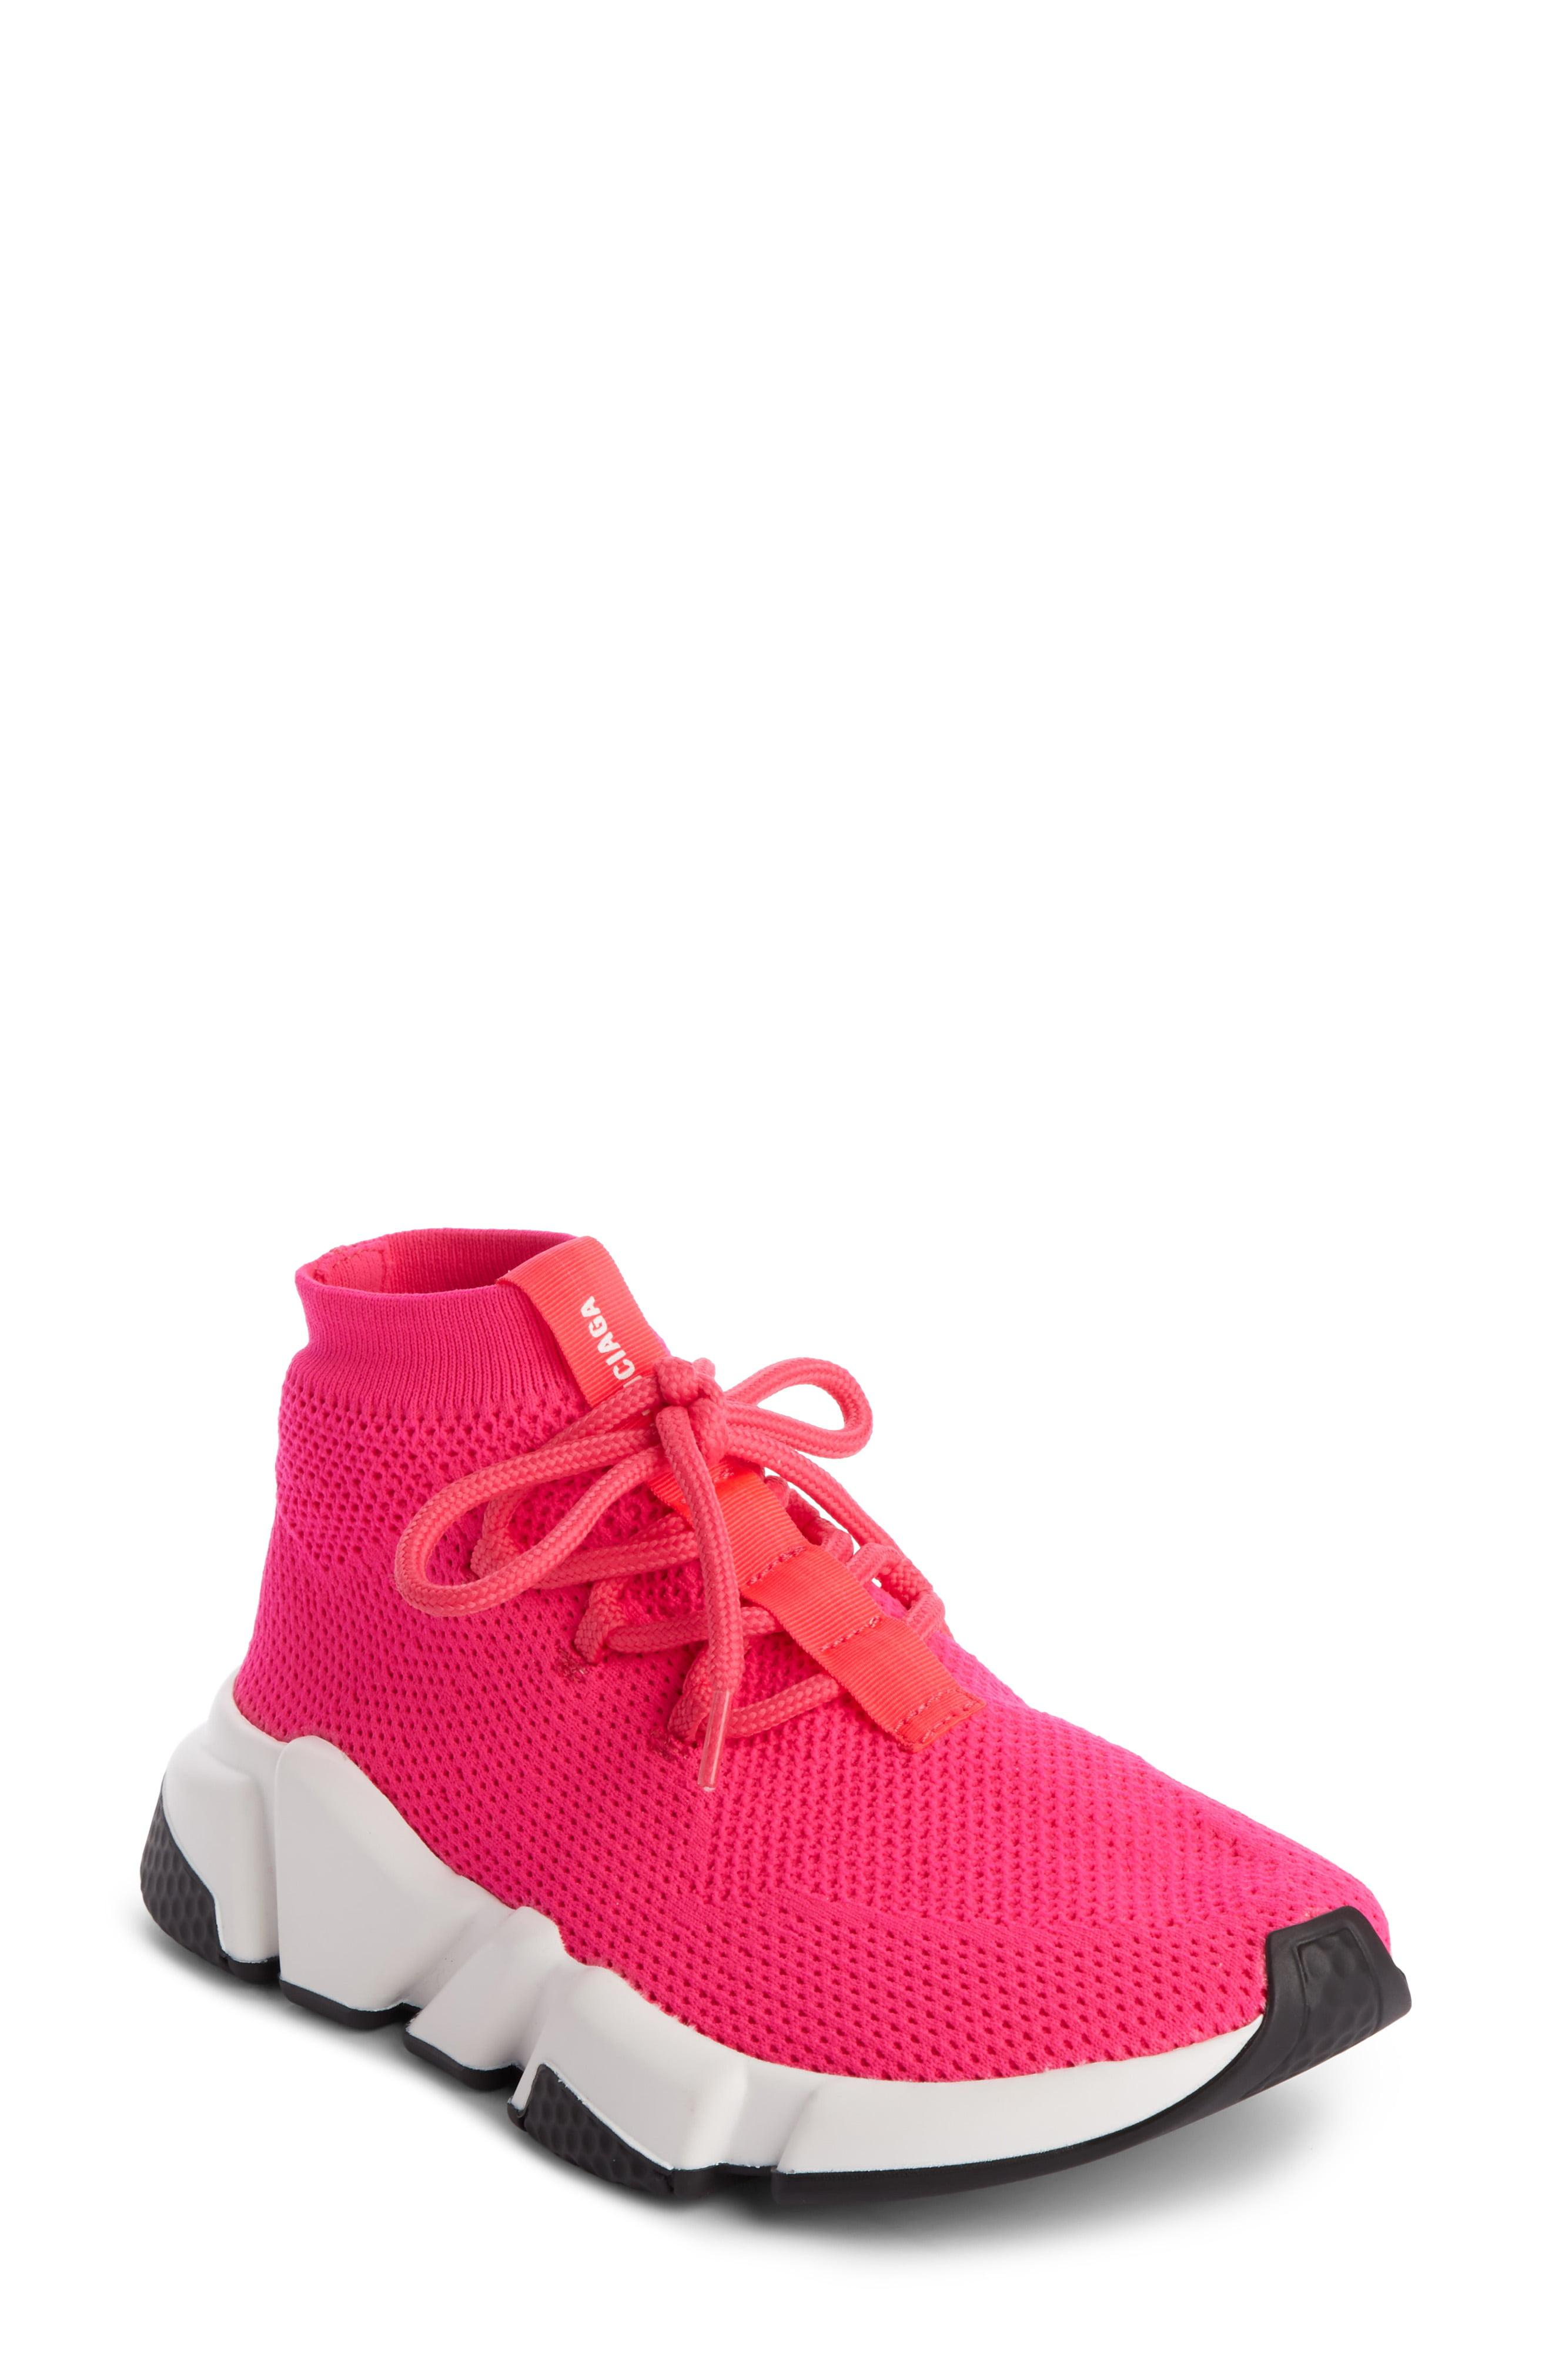 Balenciaga Speed Lace-up Sneakers in